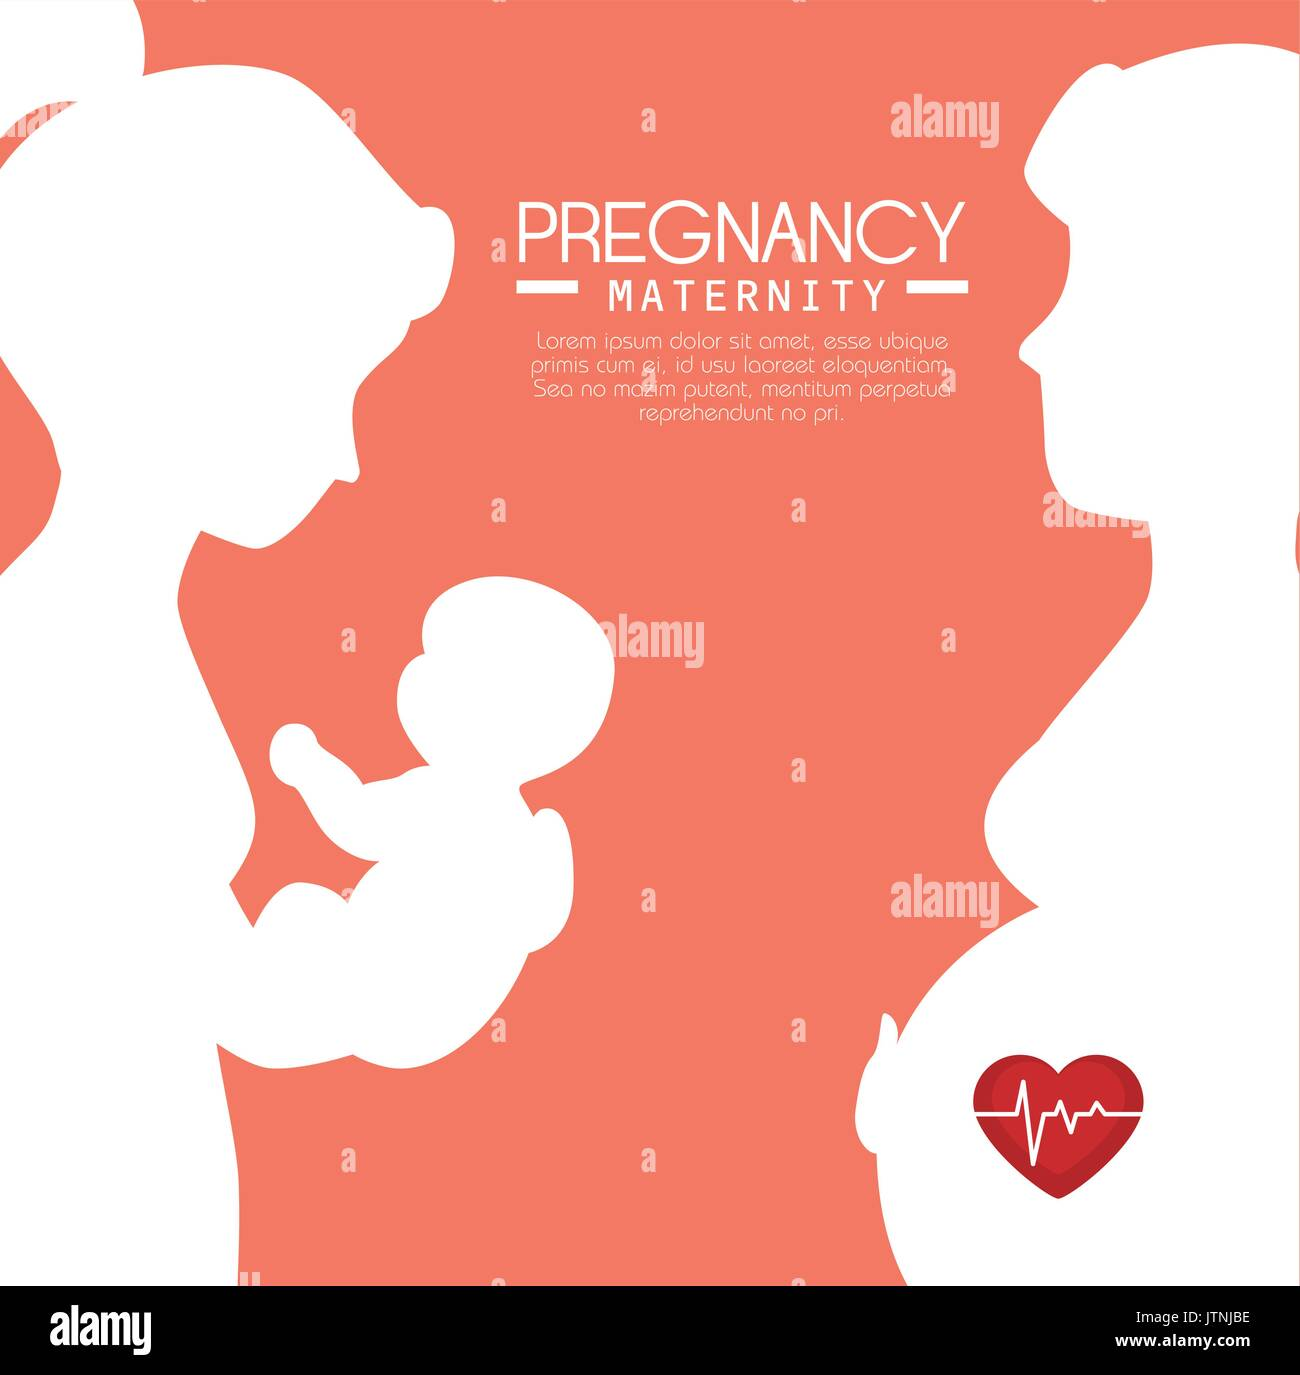 pregnancy and maternity infograhic - Stock Image